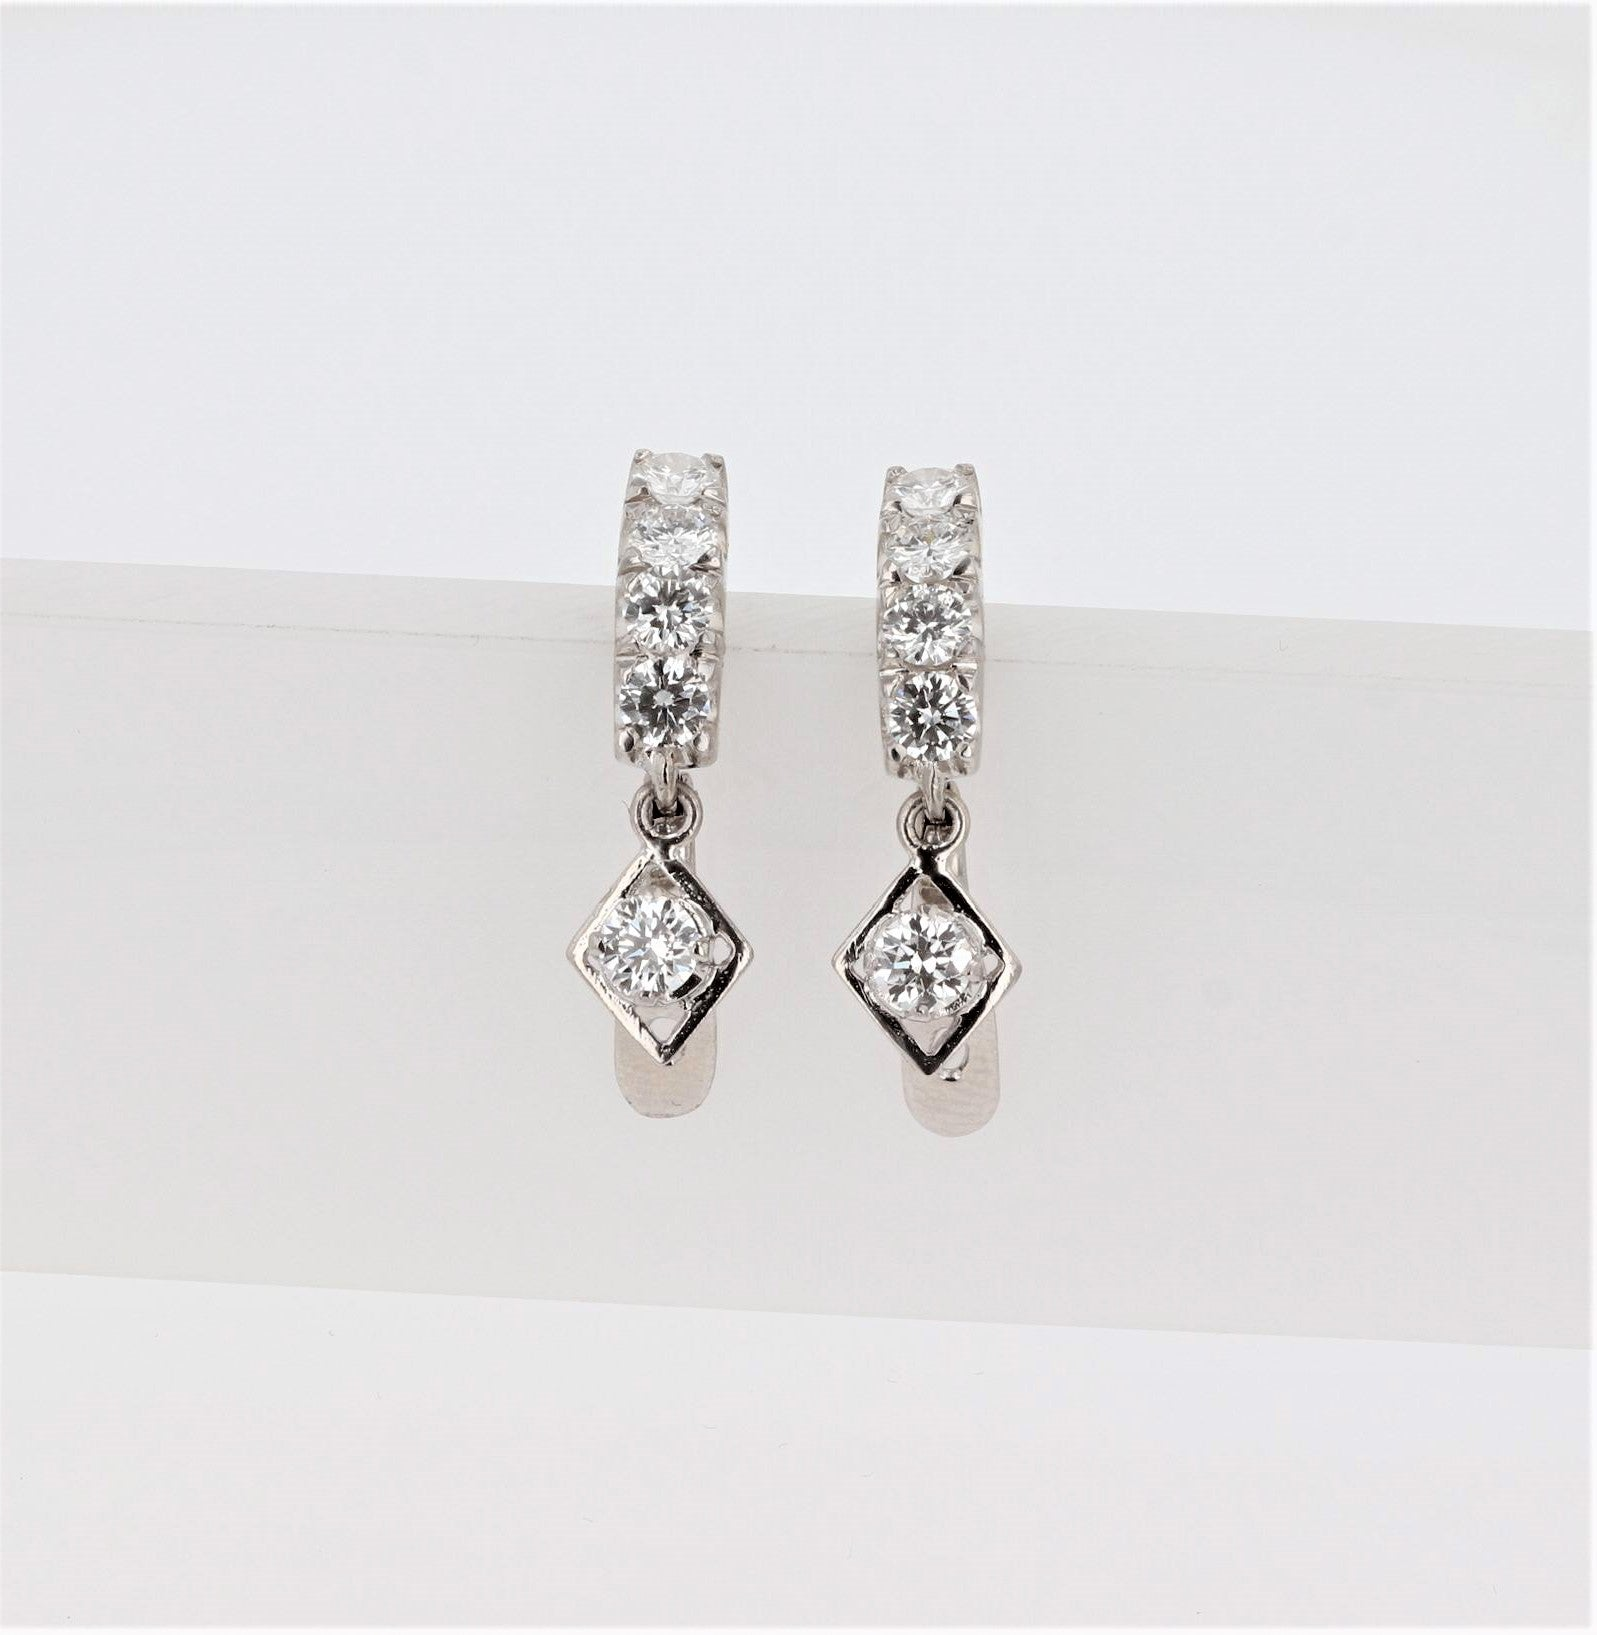 14K Women's White Gold Earrings